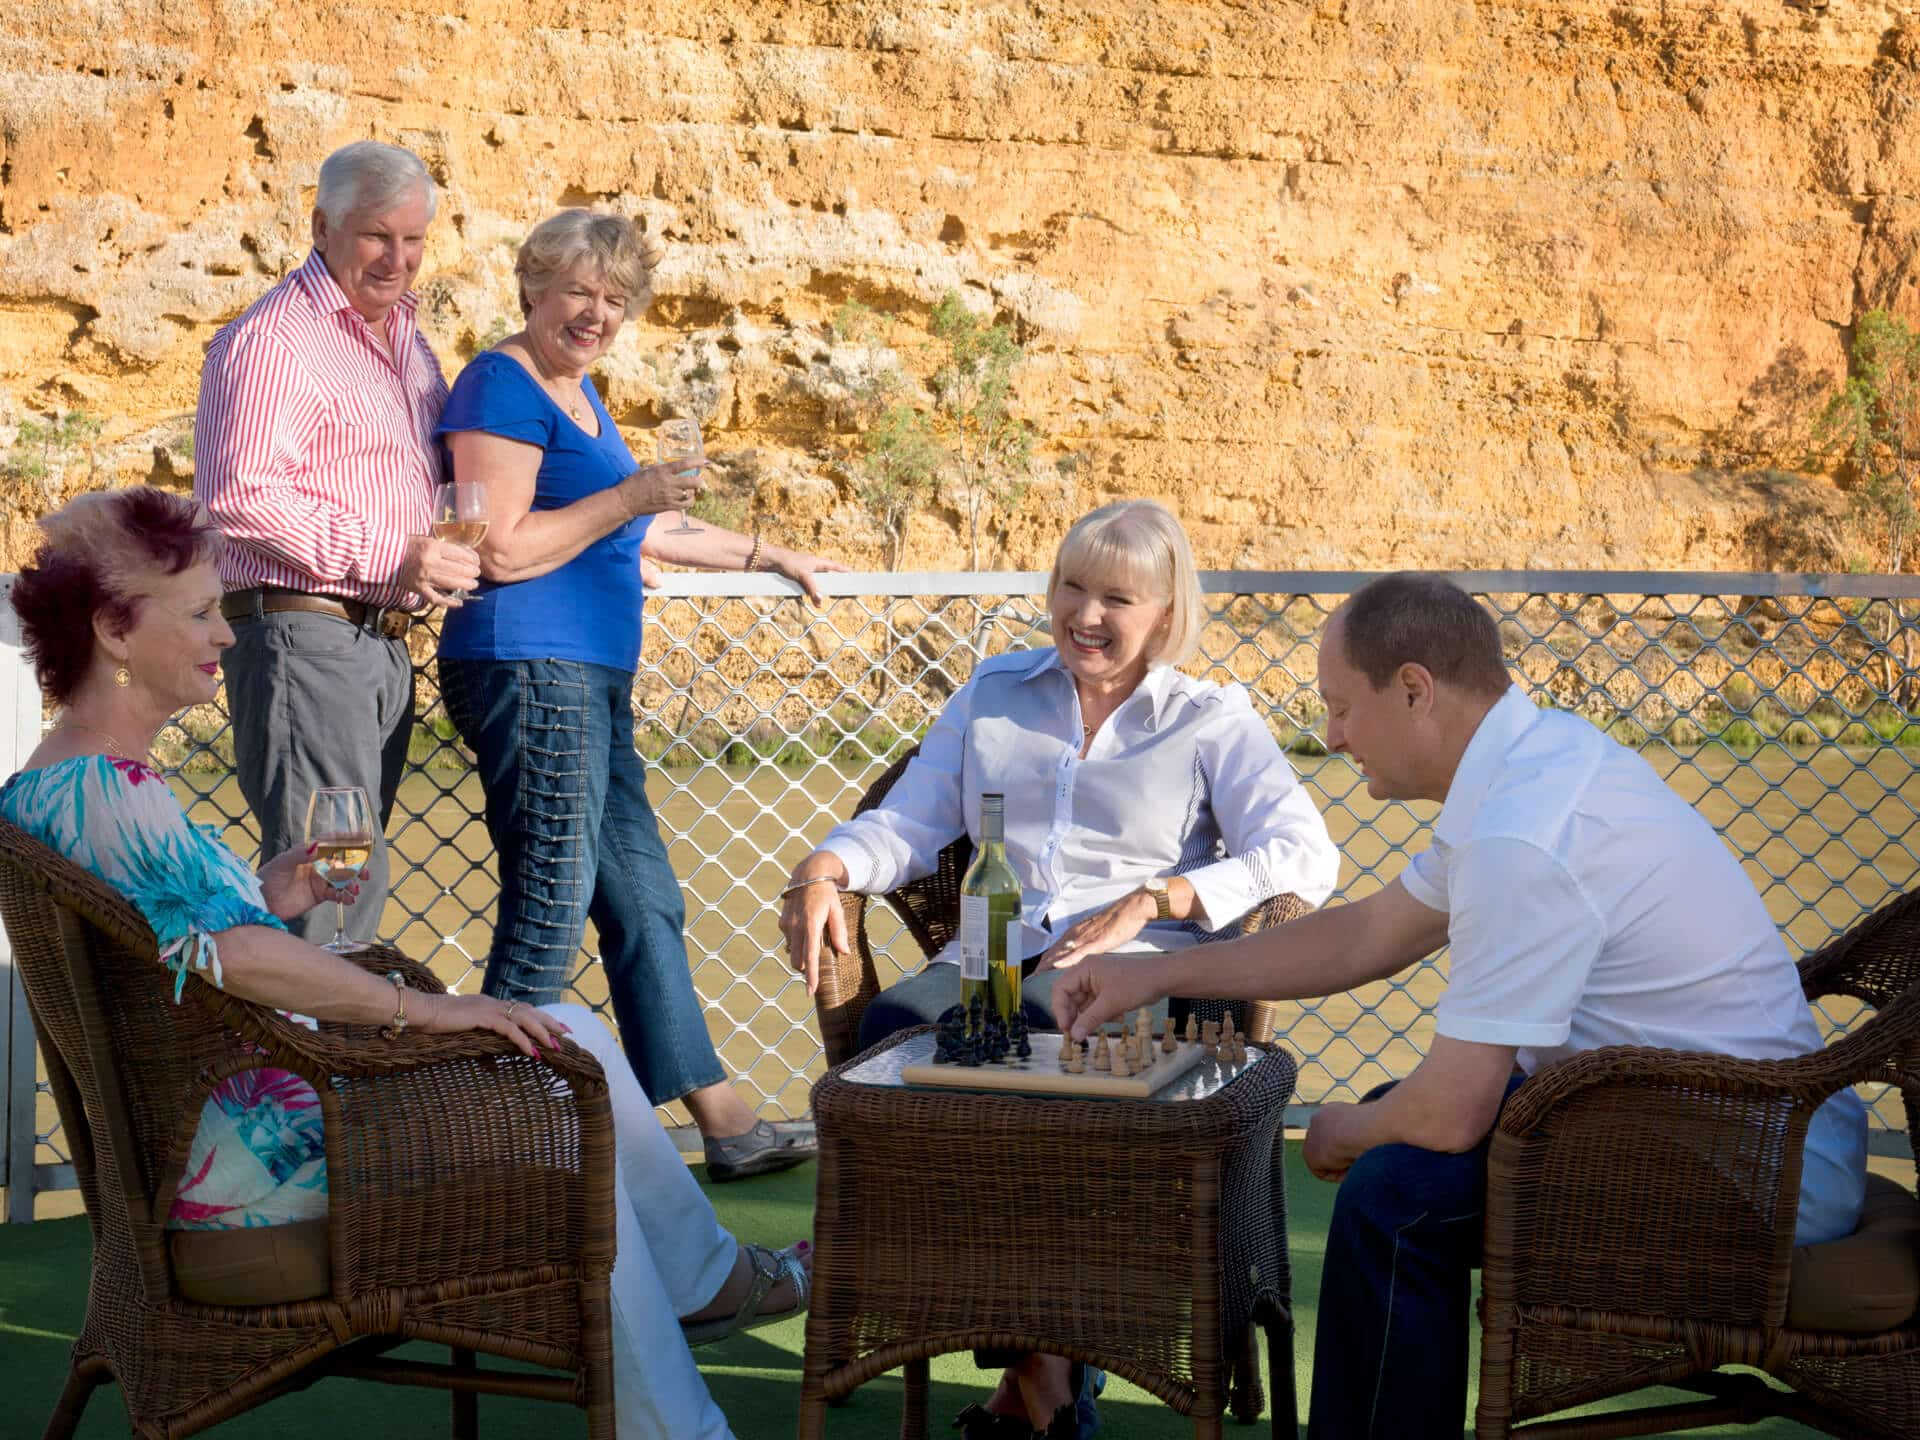 Socialising on the deck of the Murray Princess